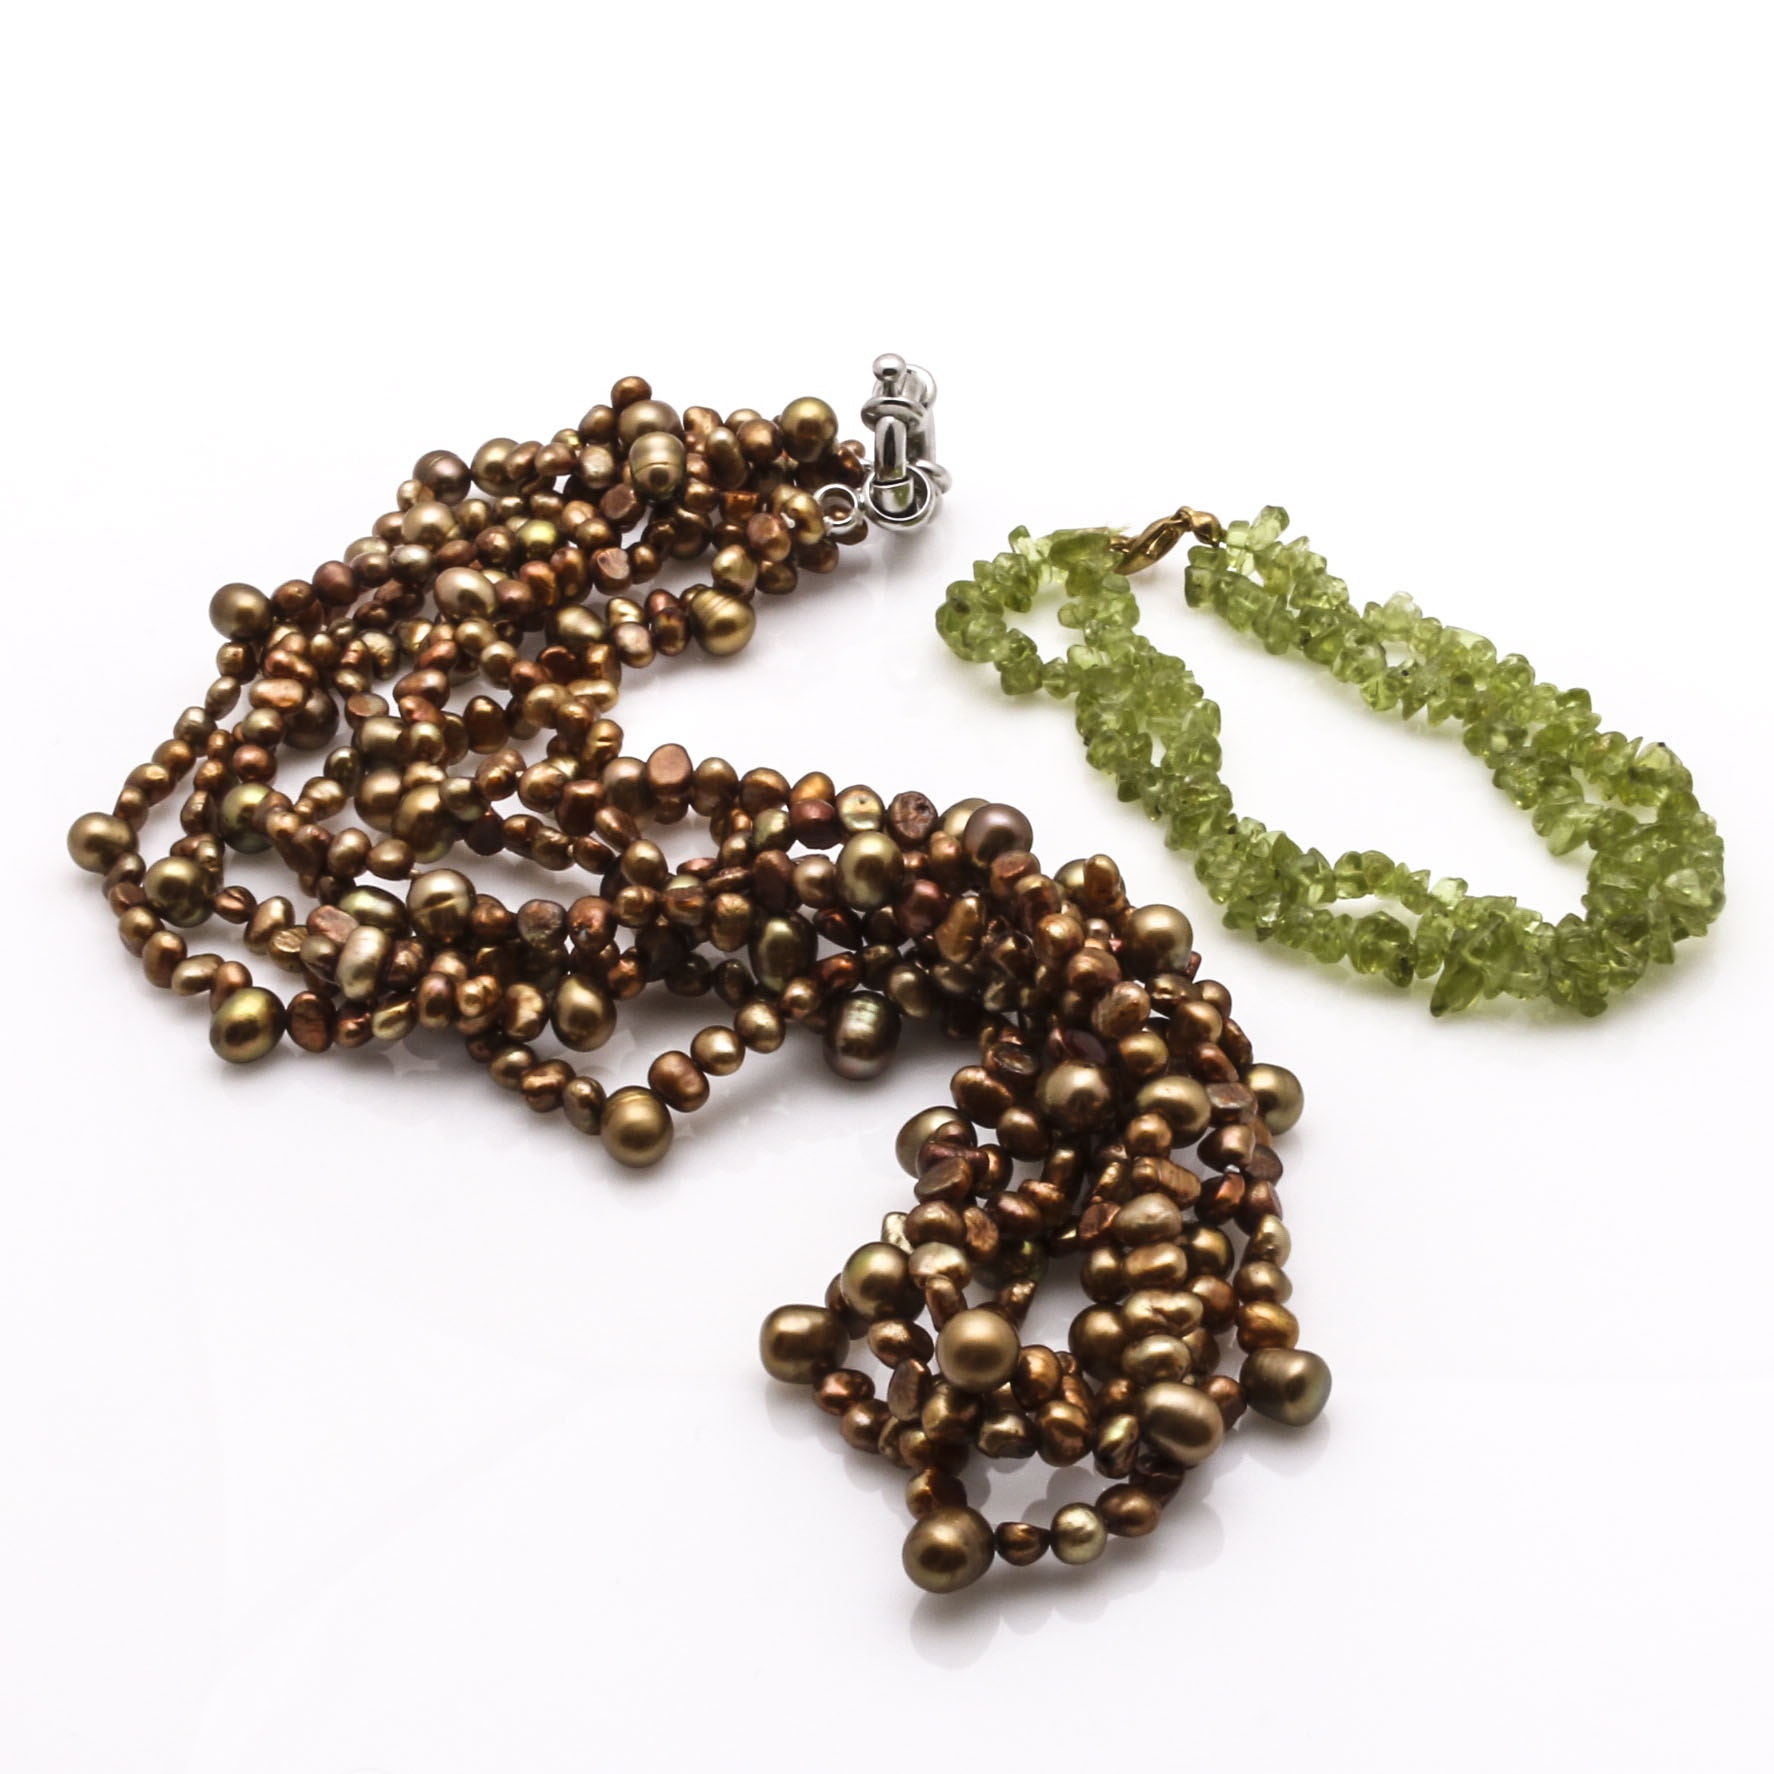 Cultured Freshwater Copper Pearl Necklace and Peridot Bracelet